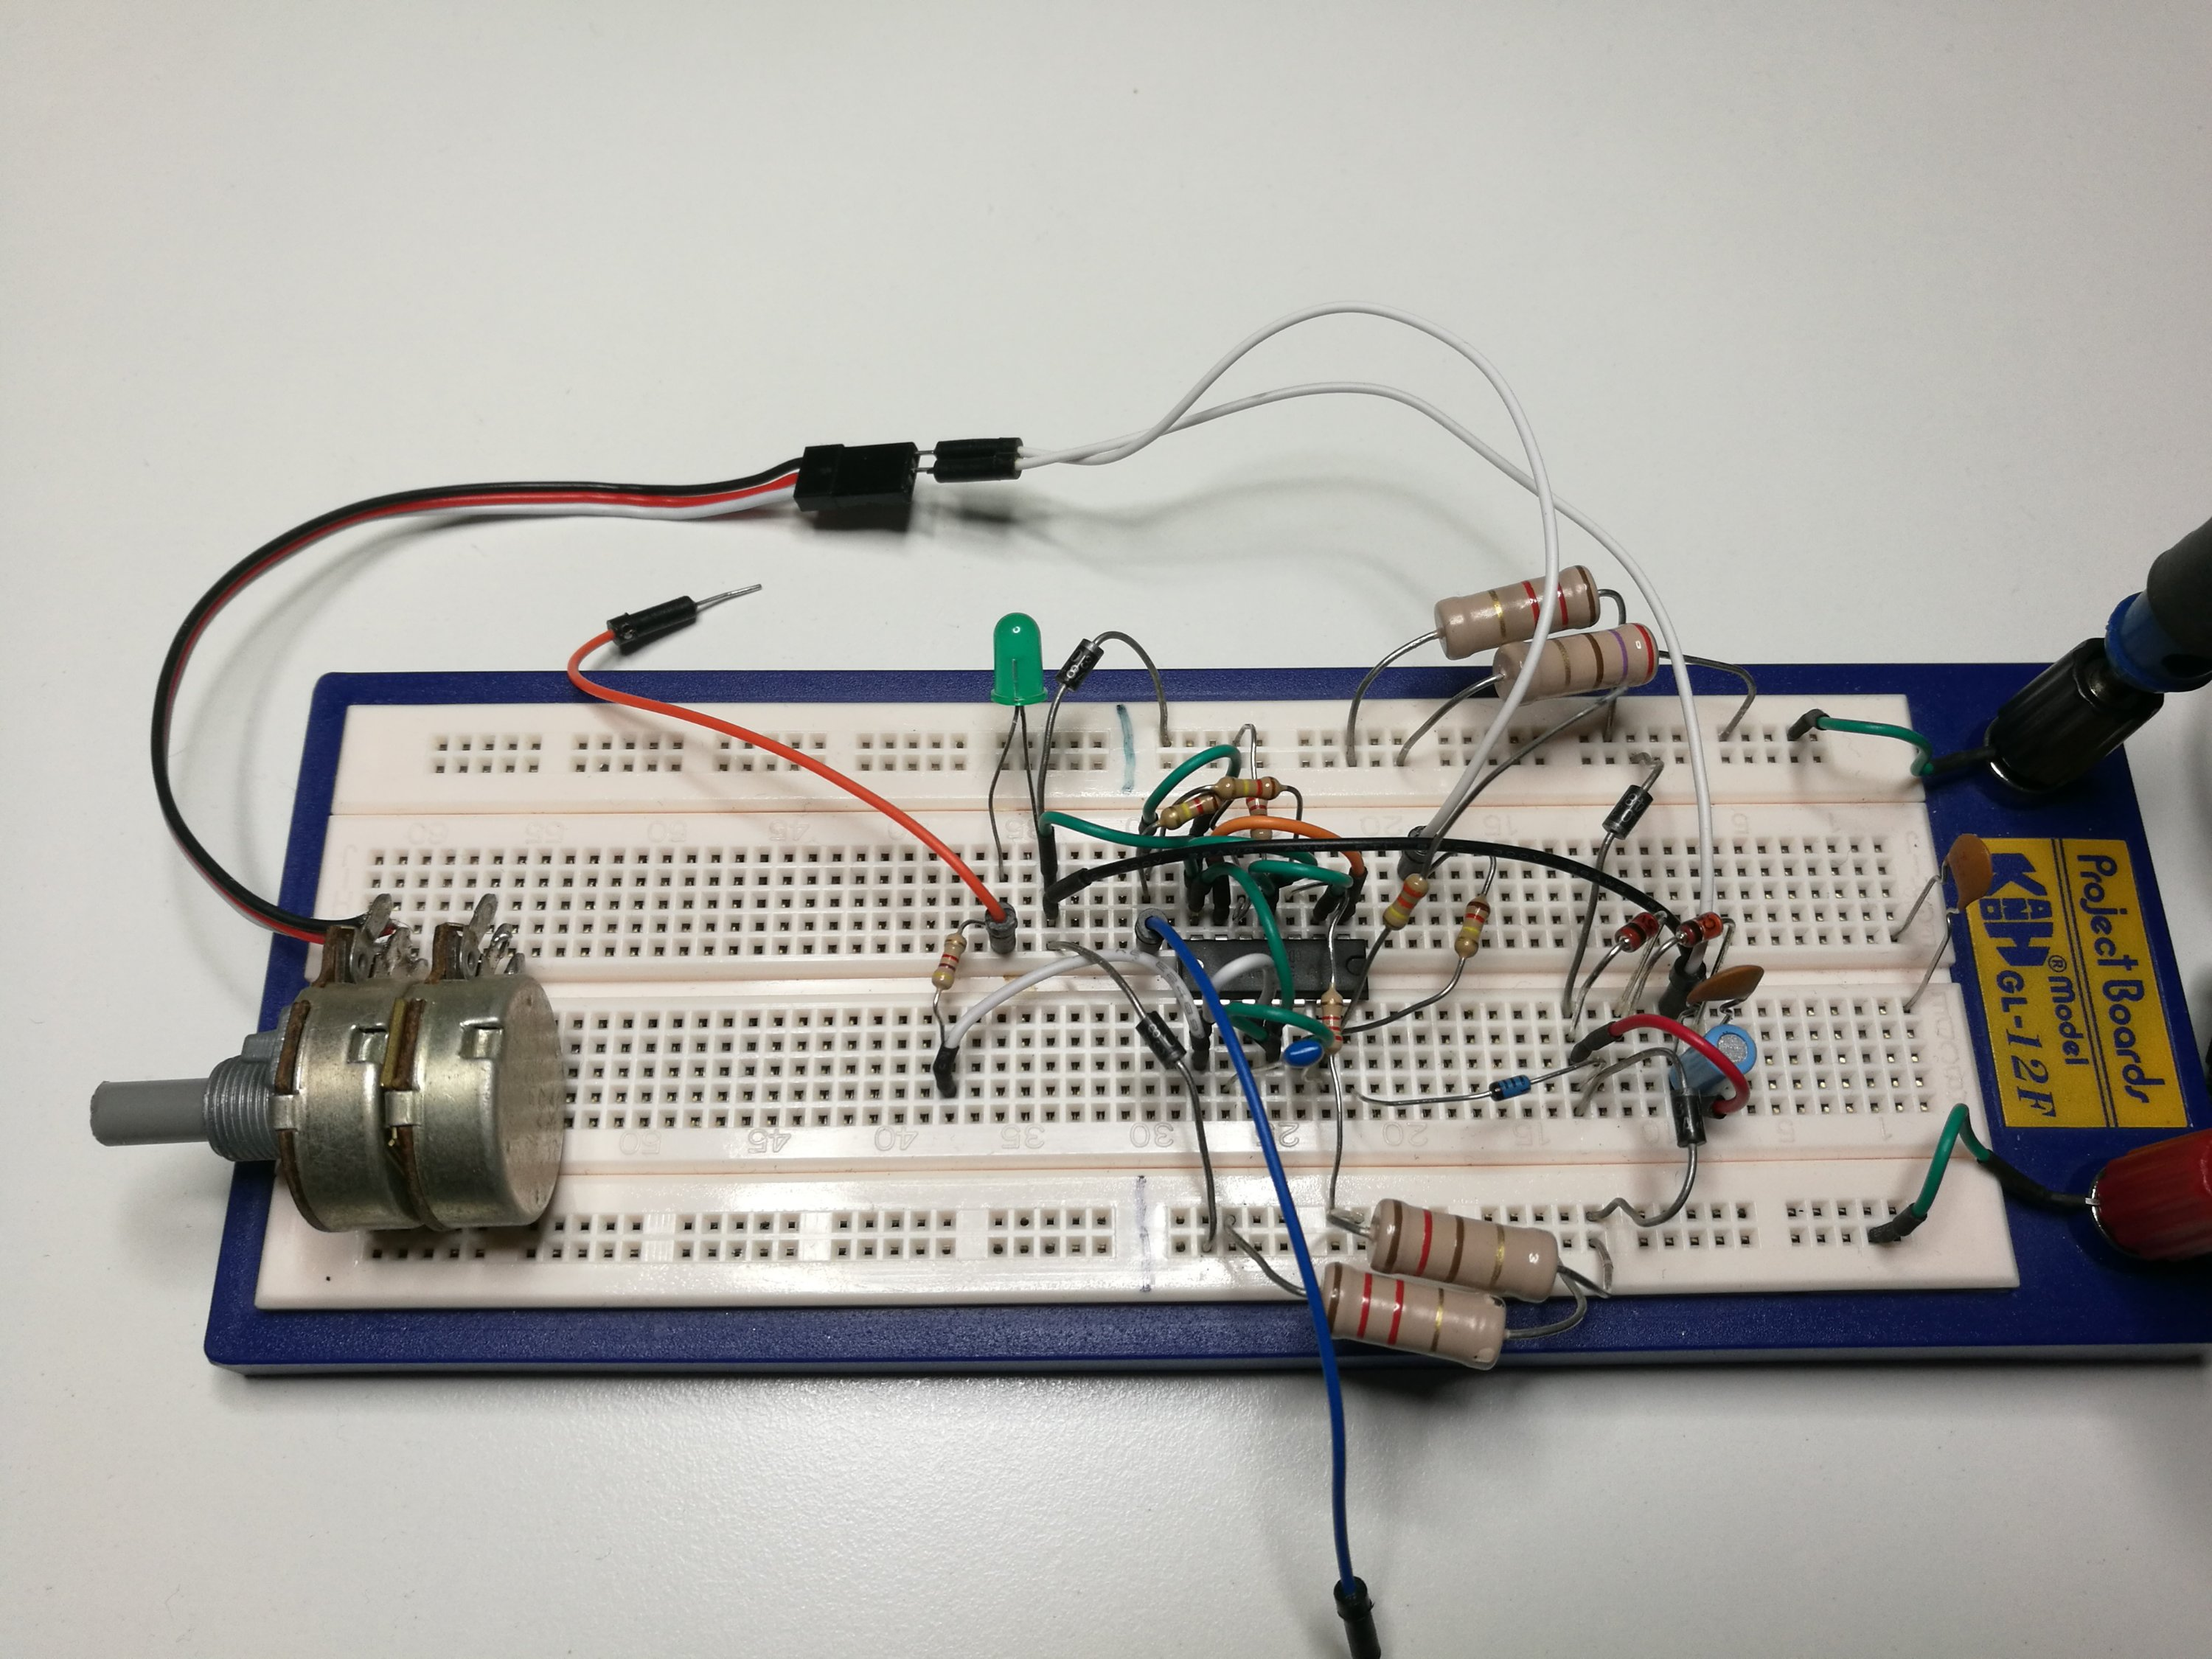 Solderless Breadboards Transparent Breadboard Showing The Metal Strips For Tie Jump Wires Also Called Jumper Breadboarding Can Be Obtained In Ready To Use Wire Sets Or You Any Suitable Solid